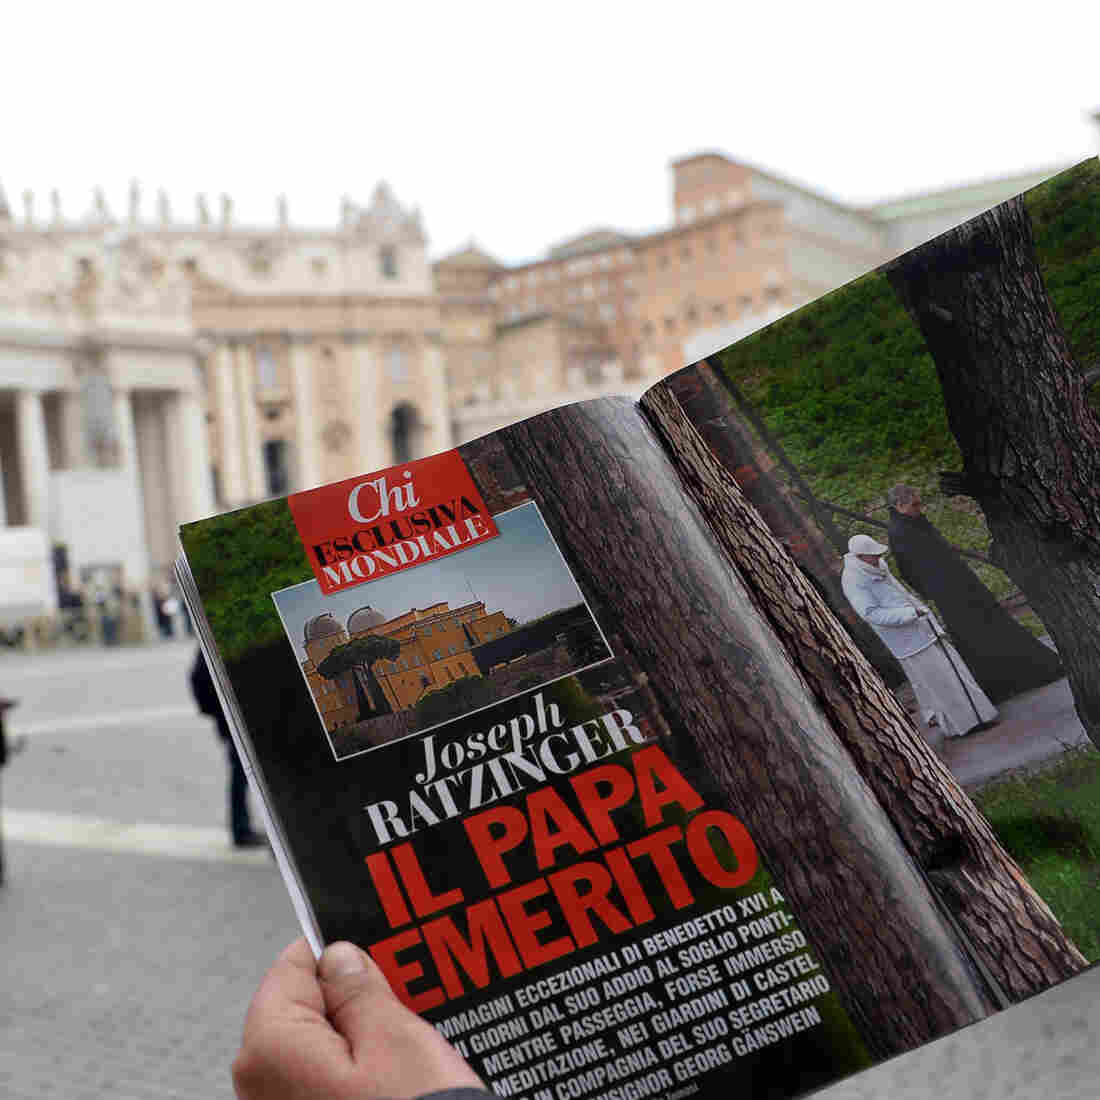 In Vatican City's St. Peter's Square on Wednesday, a man looked at  the Italian magazine Chi's photo of former Pope Benedicxt XVI — the first such image since he stepped down last week.